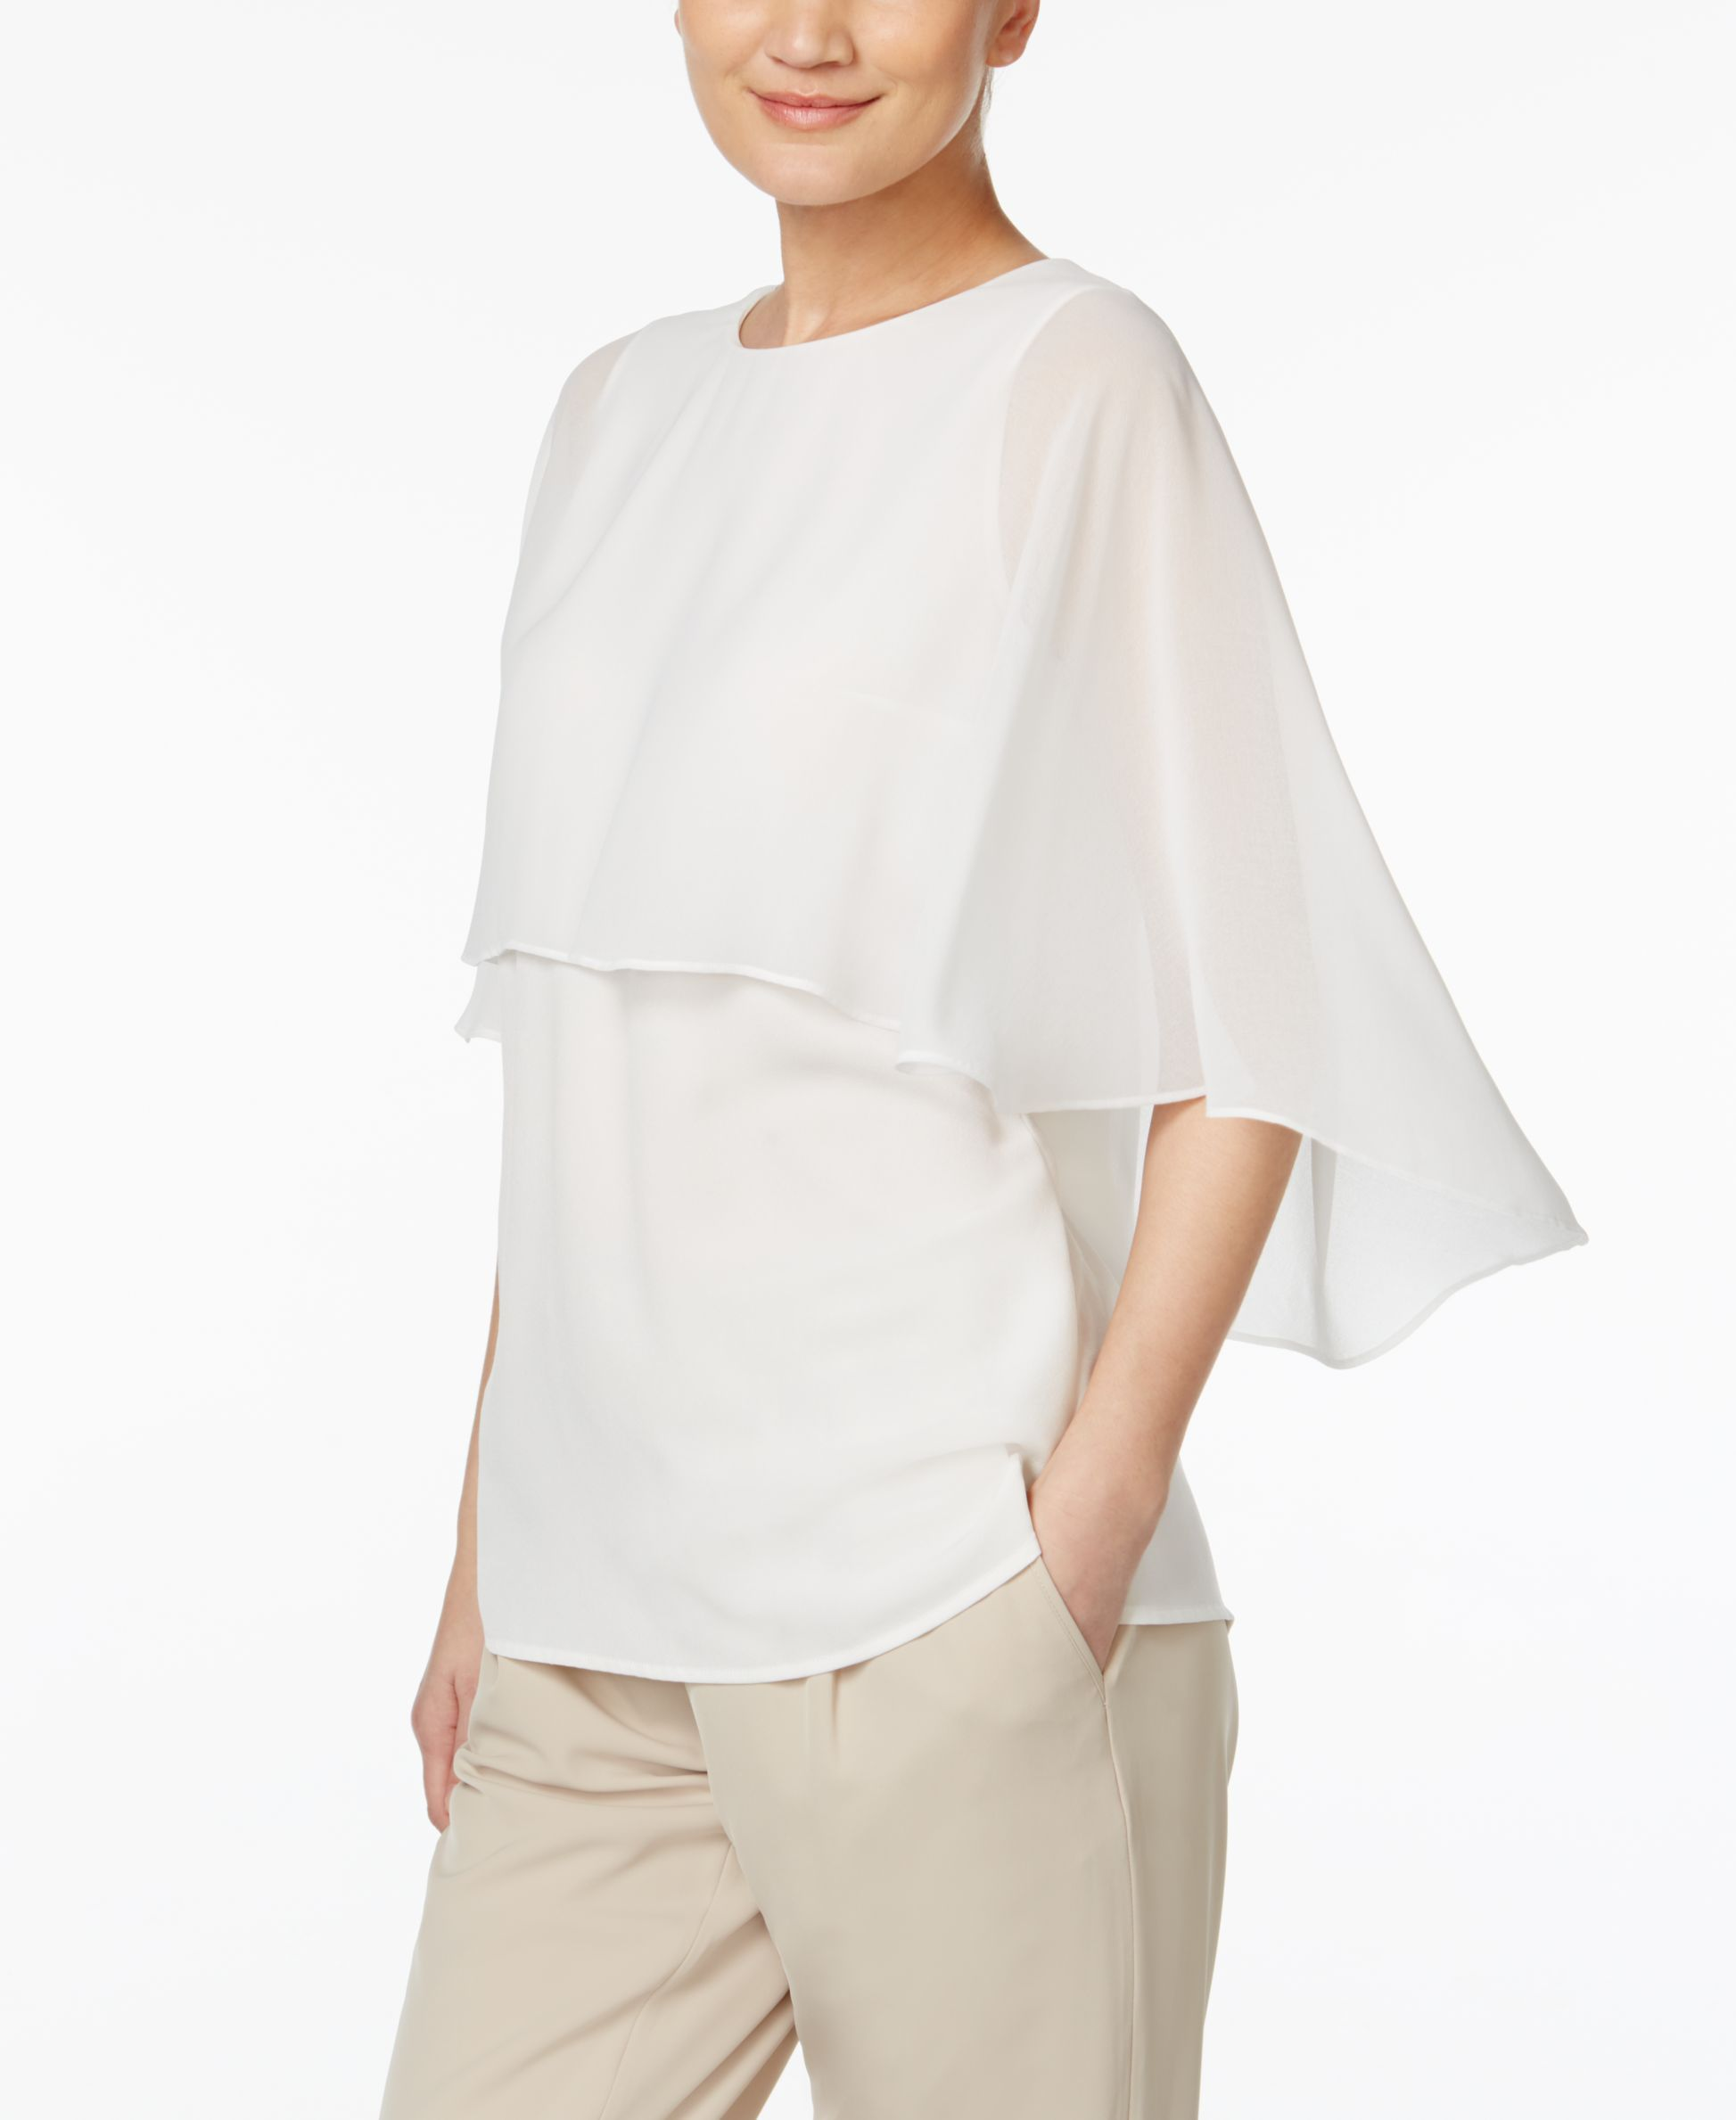 5621276634eb68 Calvin Klein Poncho-Overlay Blouse   Products   Blouse, Ruffle ...